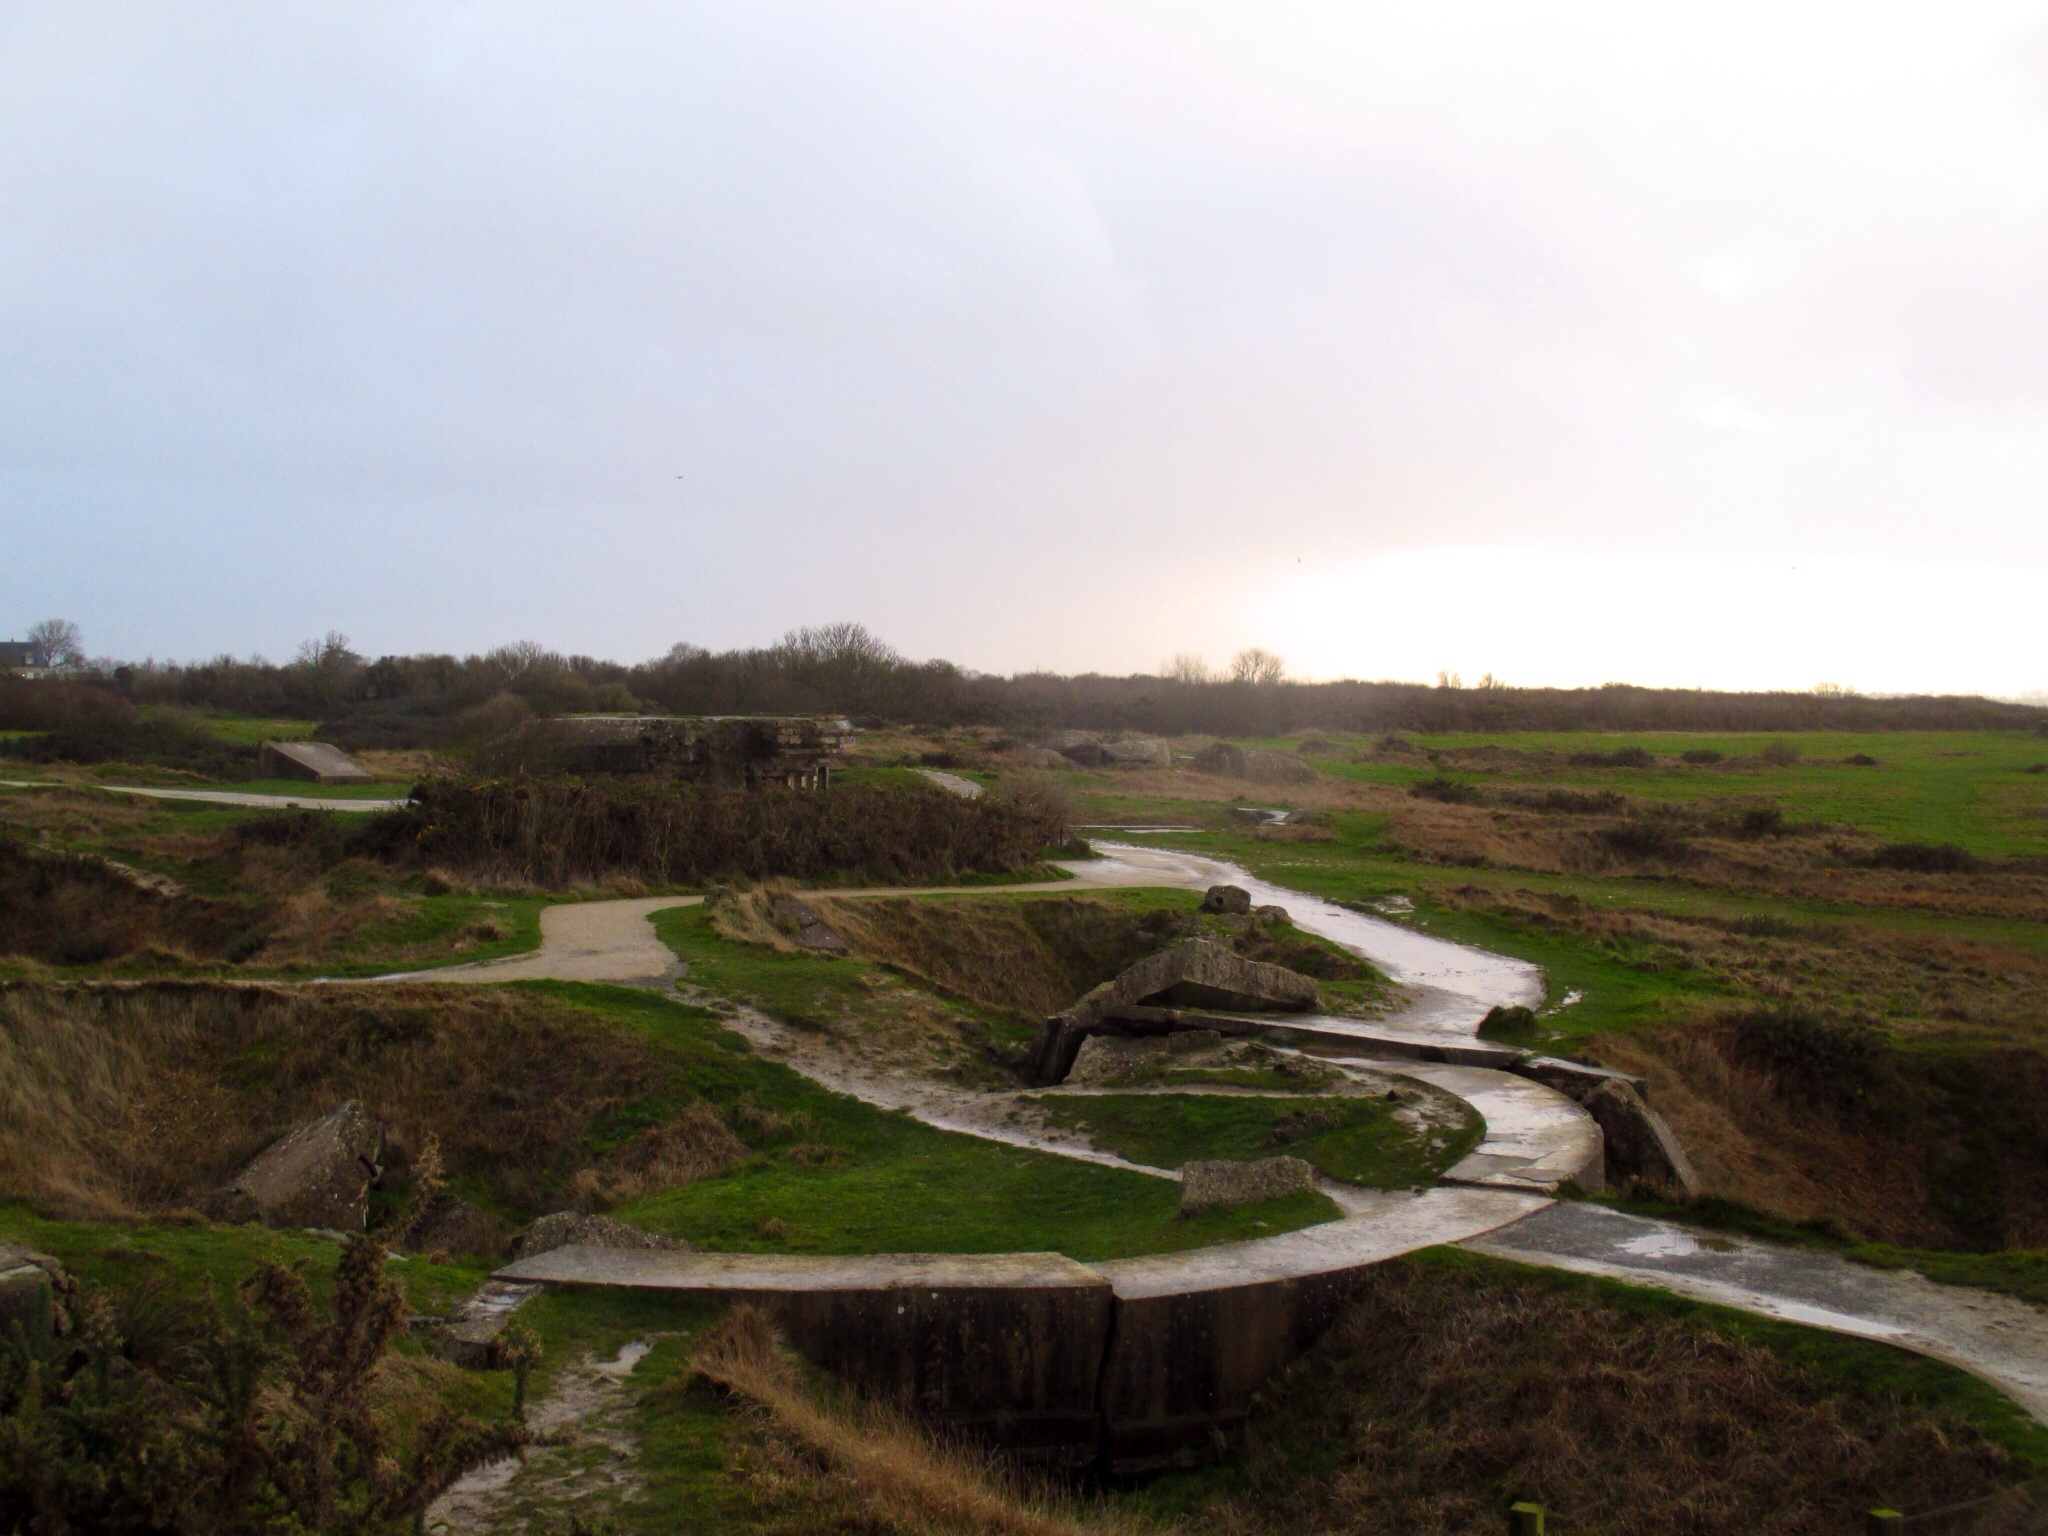 Pointe-du-Hoc pockmarked by craters